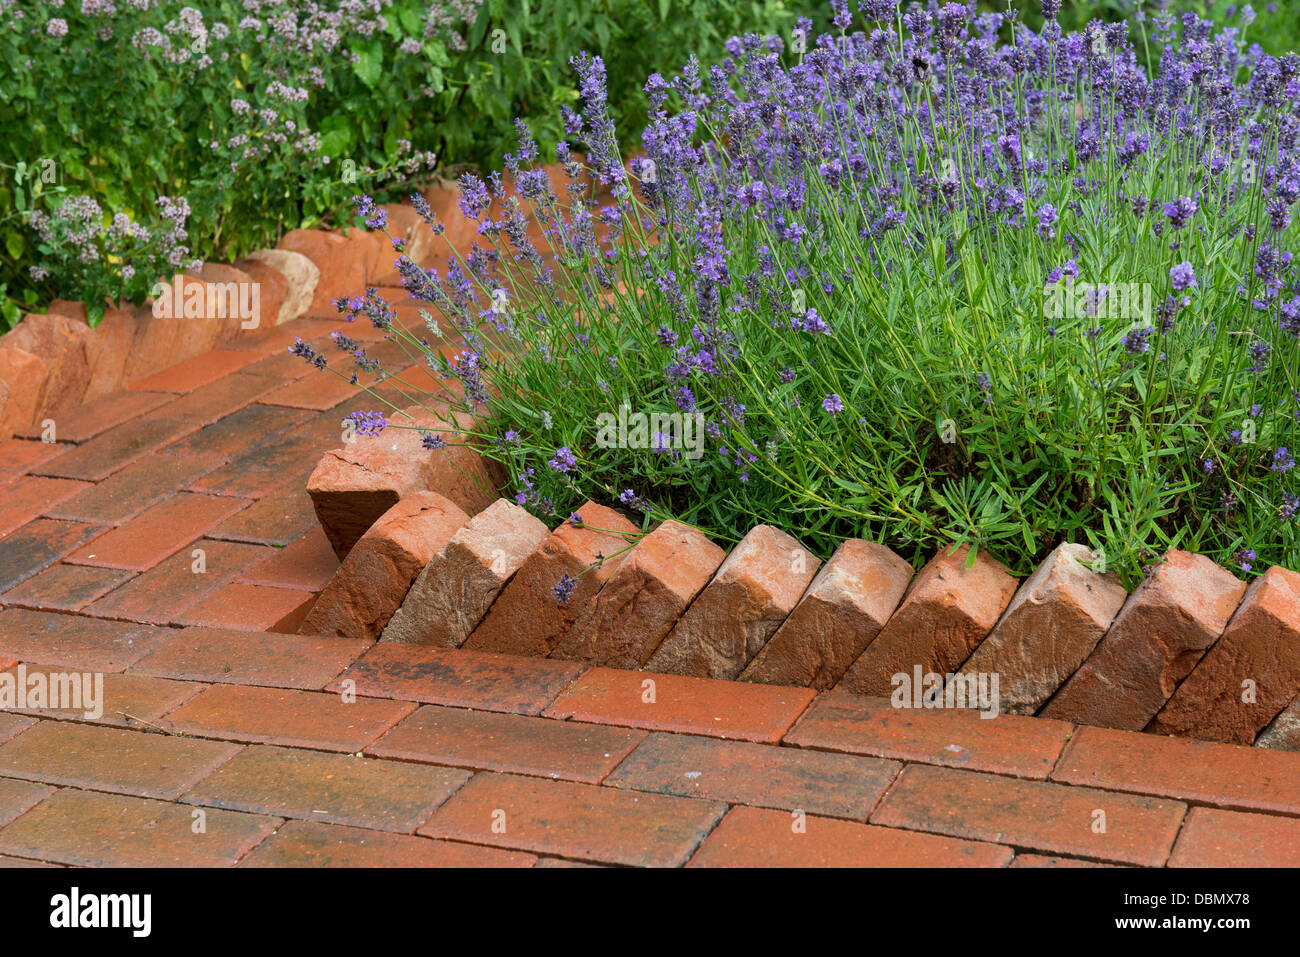 Attirant Garden Path Constructed From Concrete Pavers With A Saw Tooth Housebrick  Edging Bordering A Lavender Bed